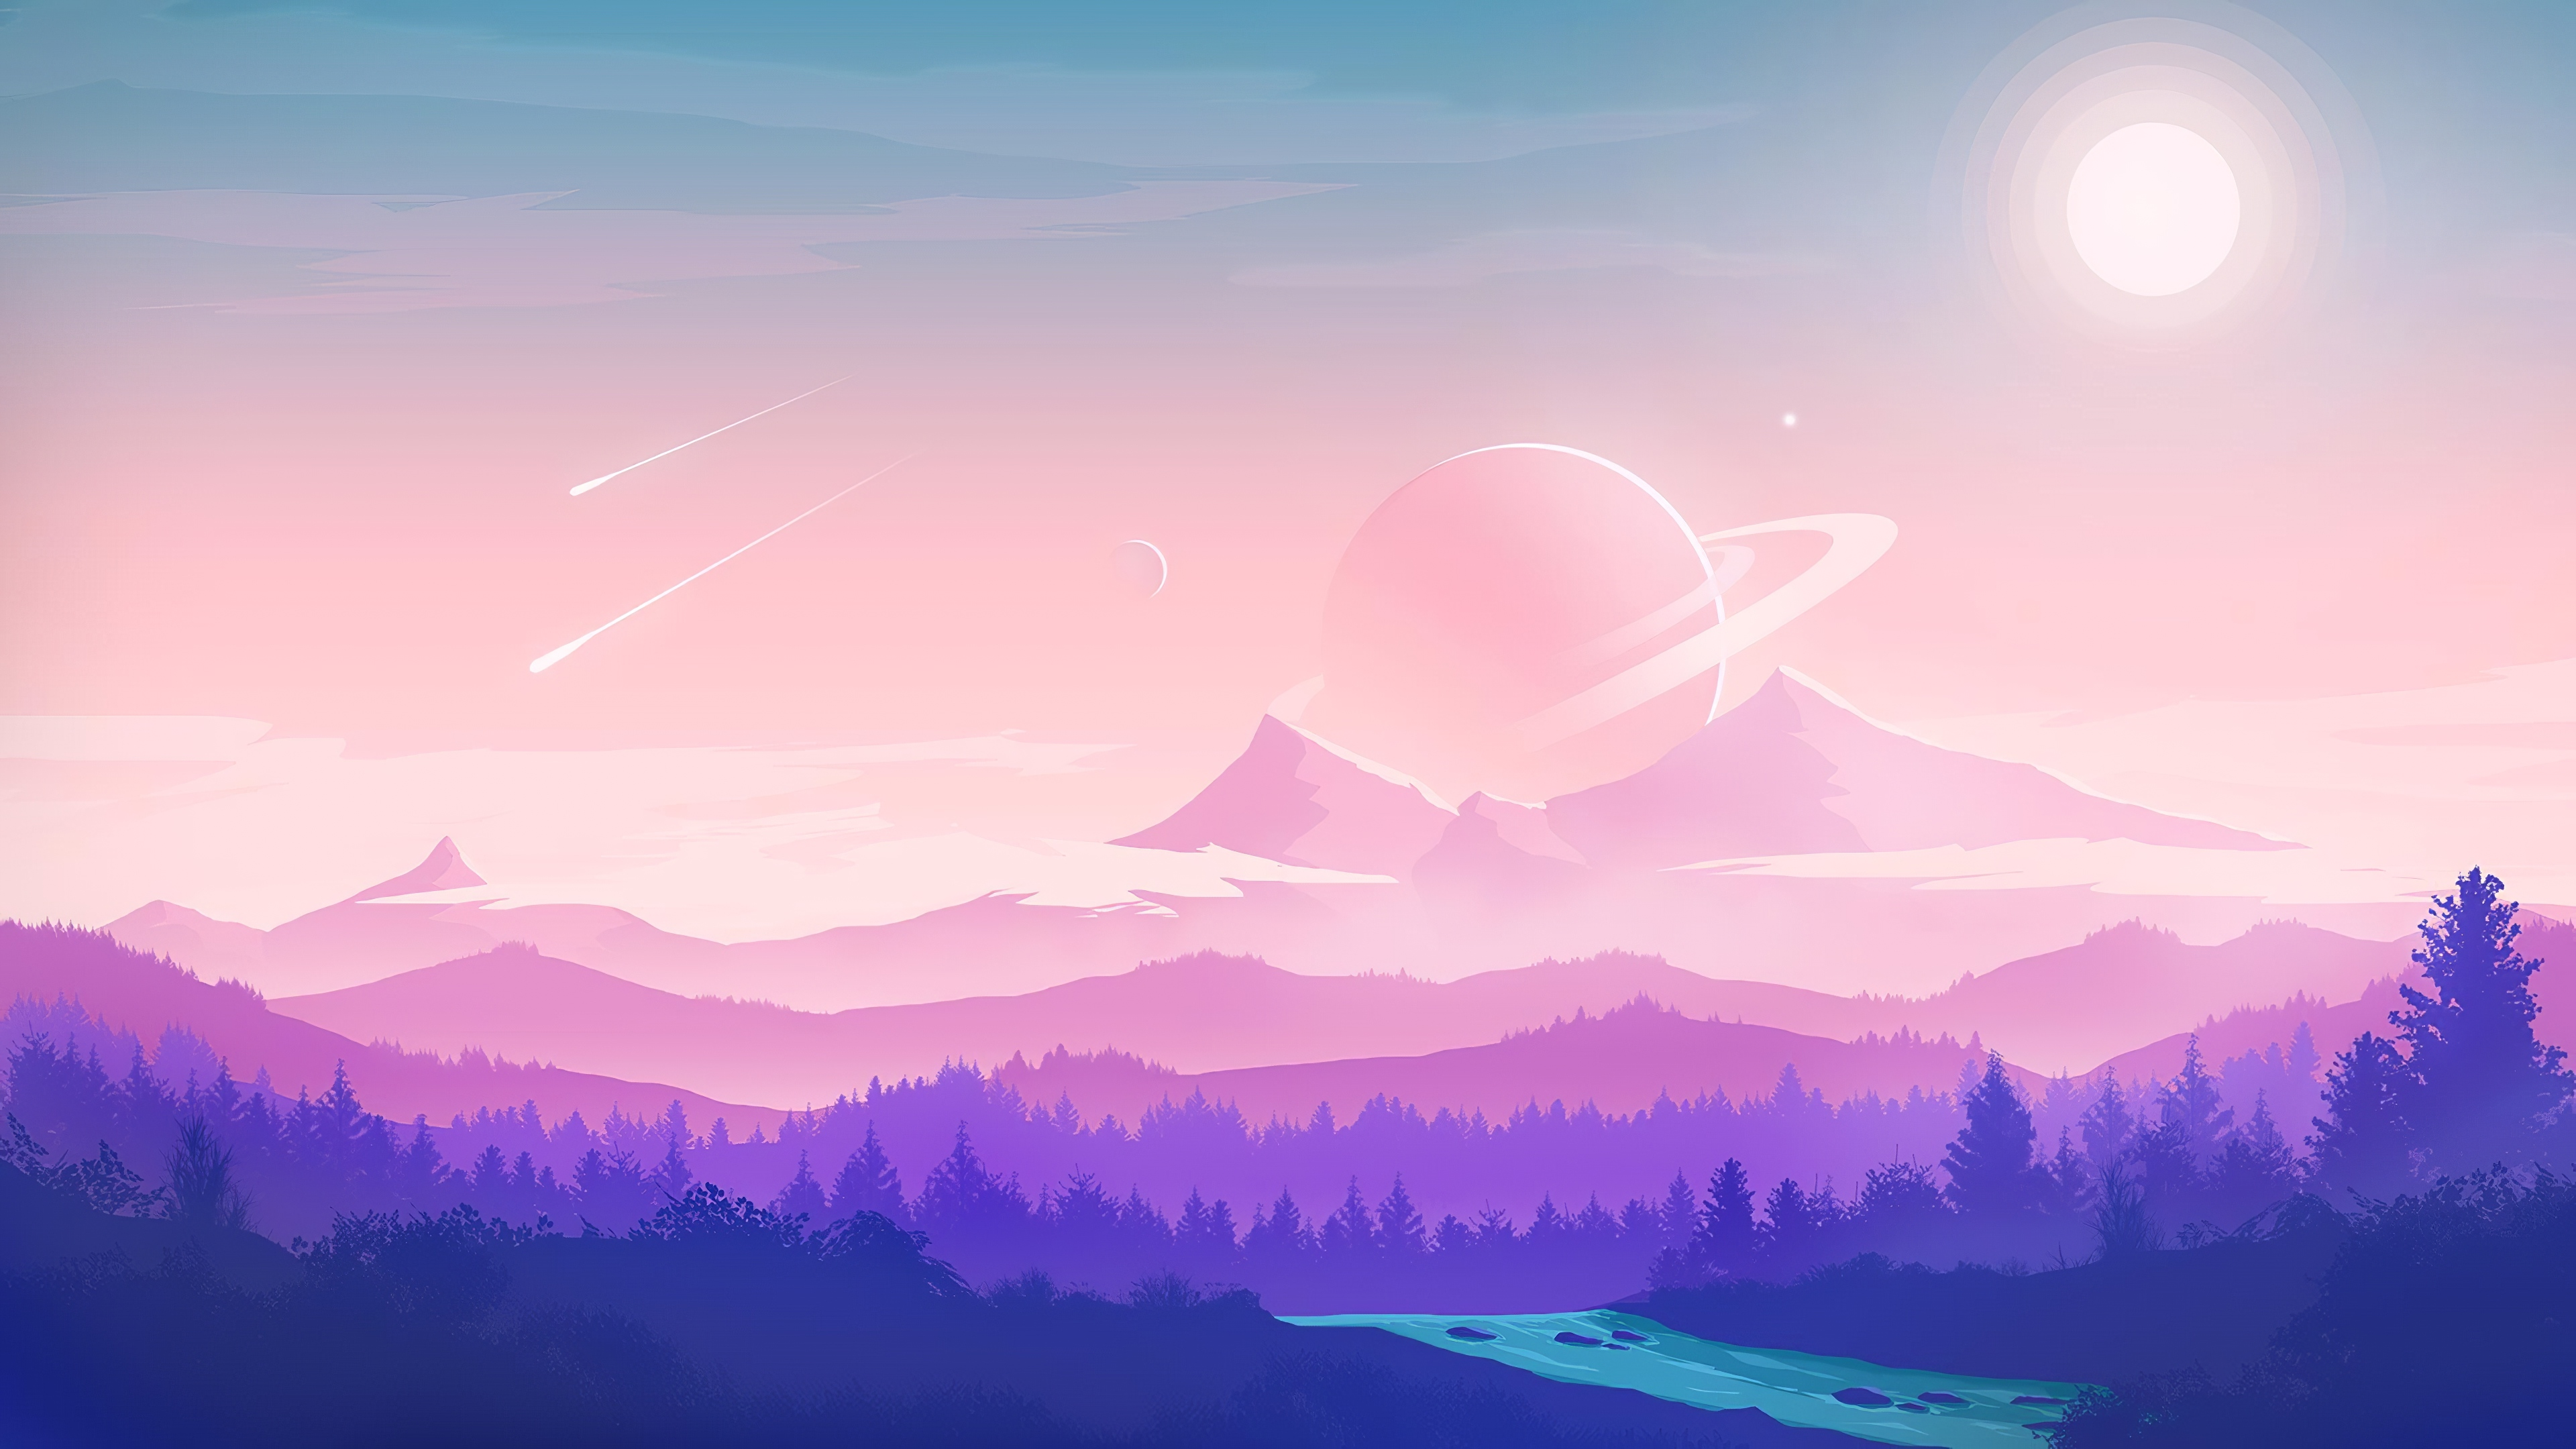 General 3840x2160 digital art artwork fantasy art planet Sun sunlight nature forest trees mountains landscape sky skyscape comet clouds minimalism Flatdesign vector art illustration vector